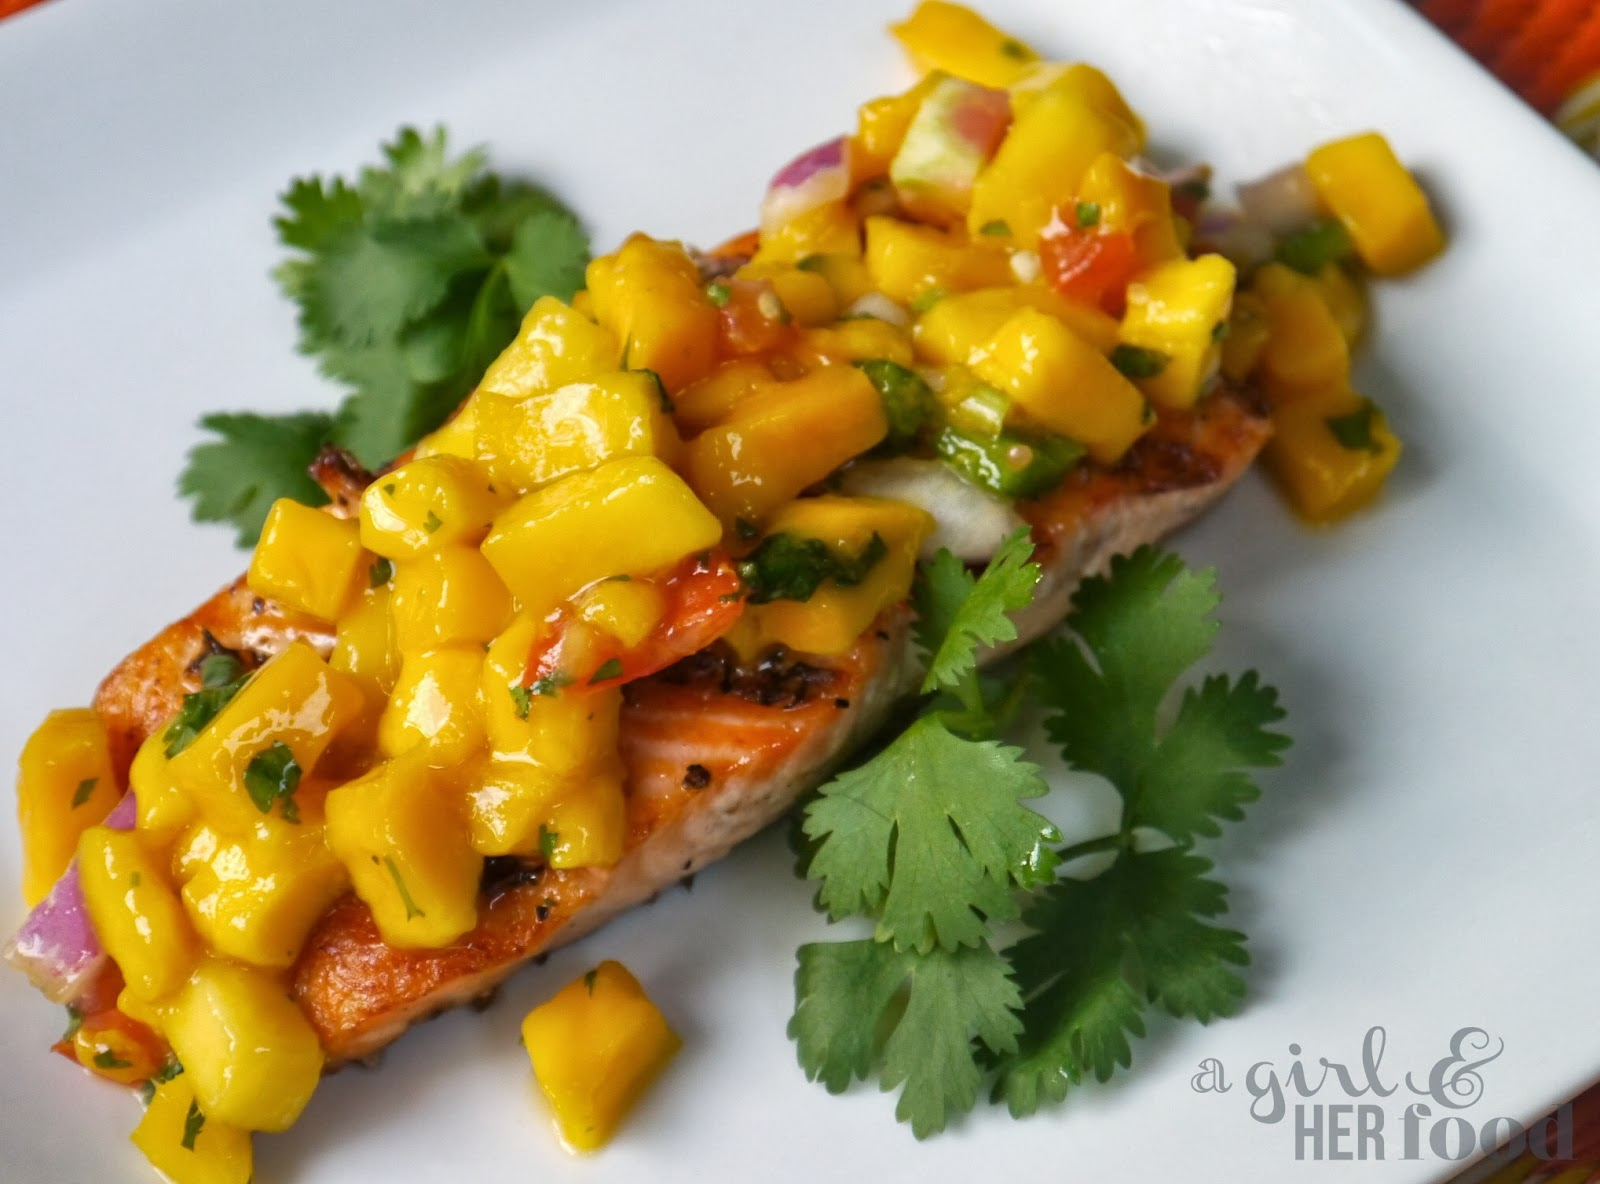 Girl & Her Food: Grilled Salmon with Mango Salsa